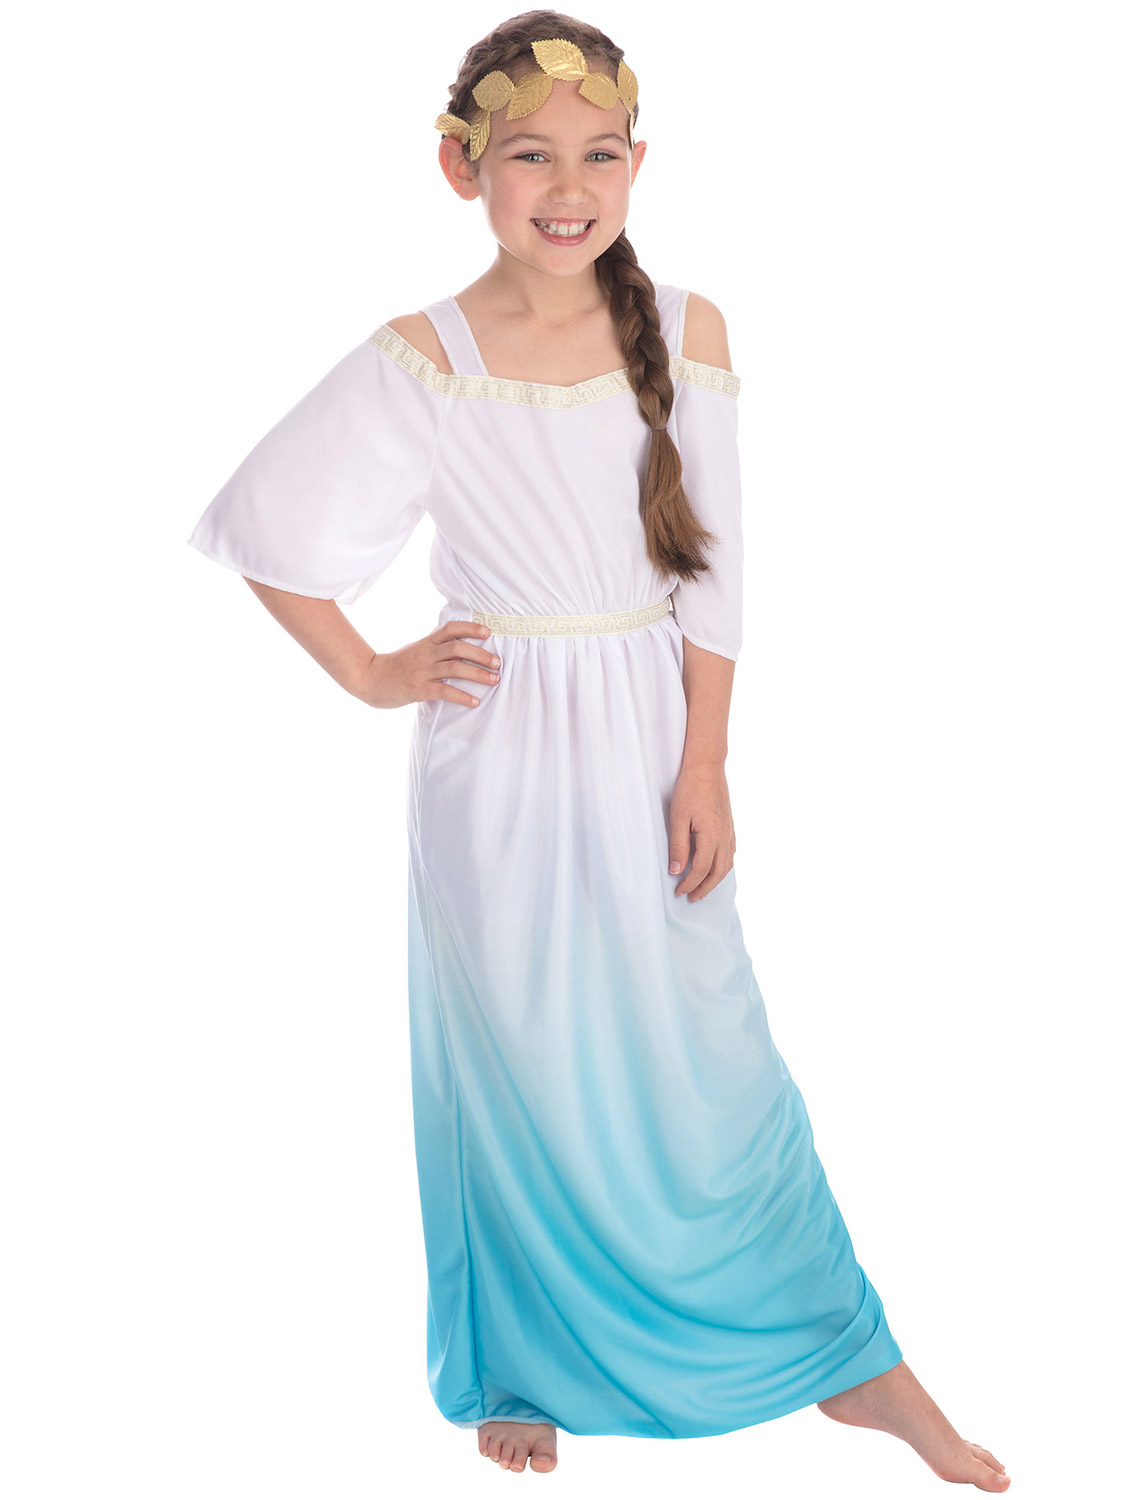 Click image to enlarge. Image for reference only, bundles and options ...: www.ebay.co.uk/itm/Age-4-11-Girls-Greek-Goddess-Costume-Roman-Toga...